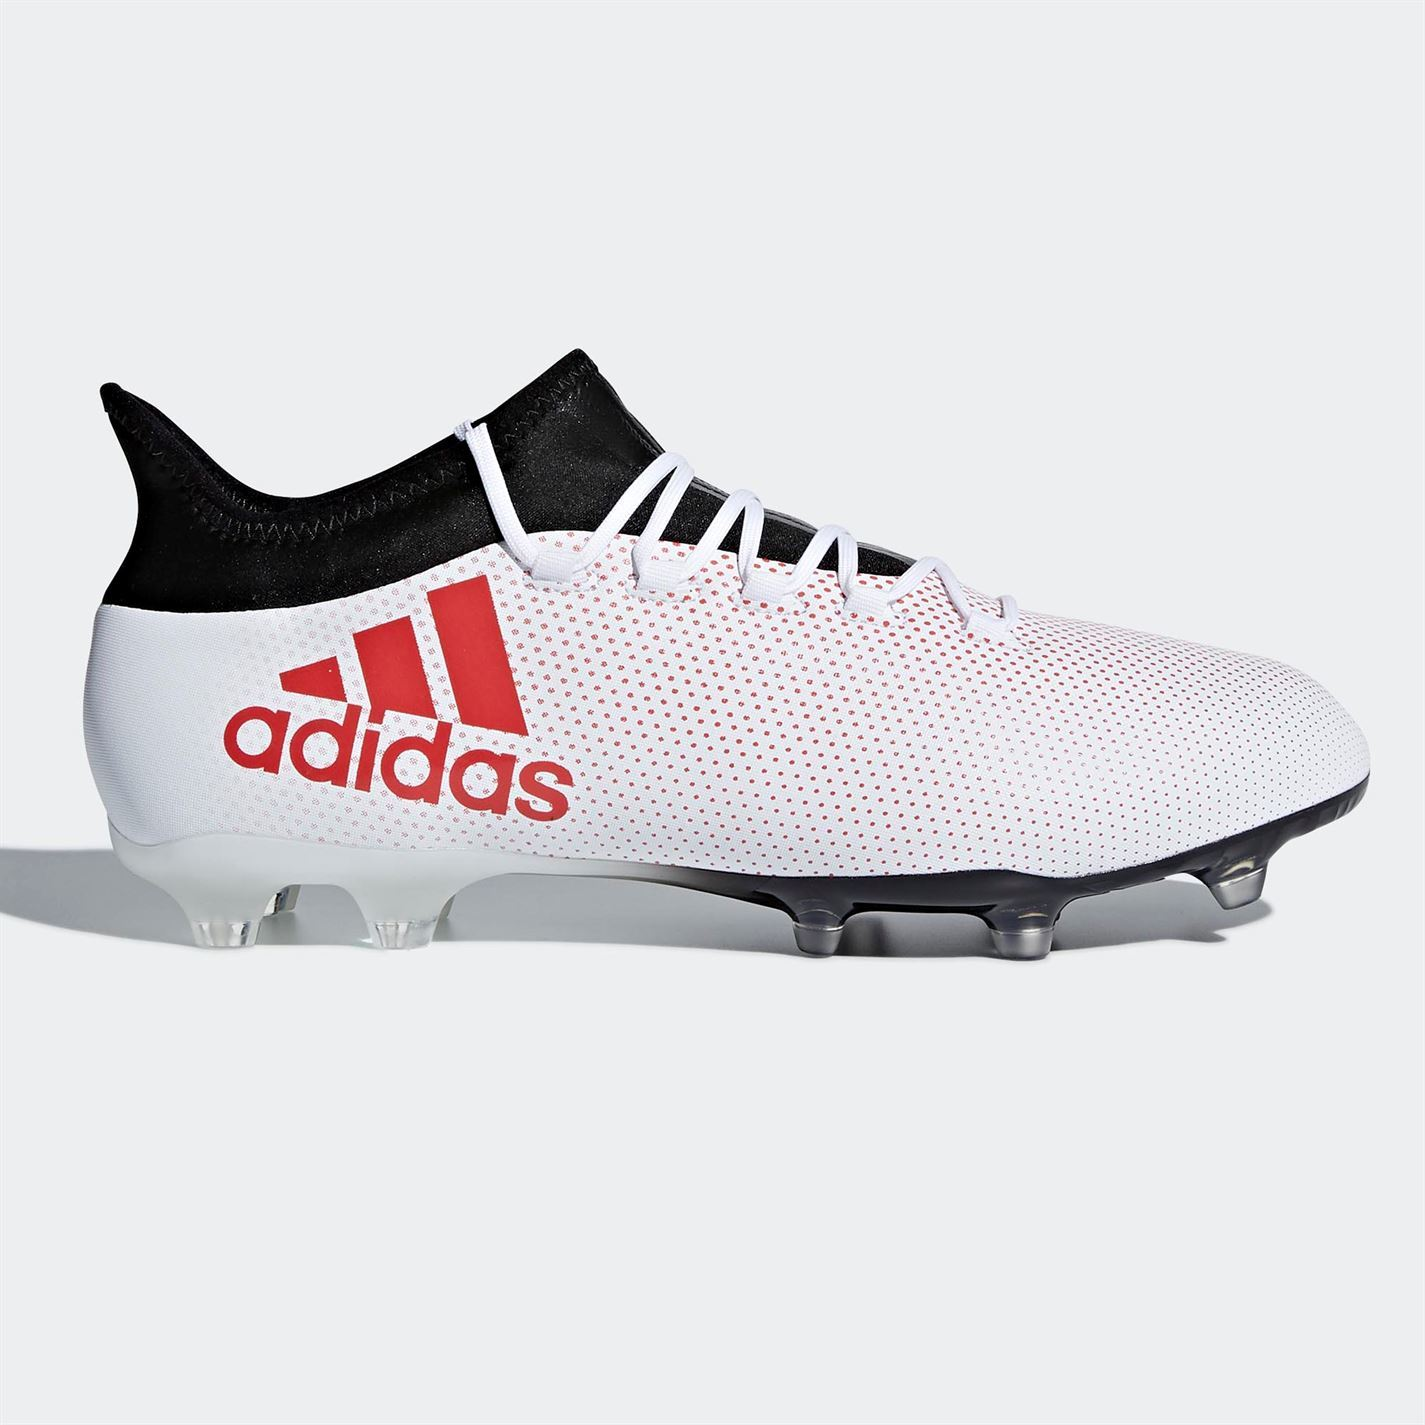 premium selection f2464 4737e ... adidas X 17.2 FG Firm Ground Football Boots Mens White Soccer Shoes  Cleats ...